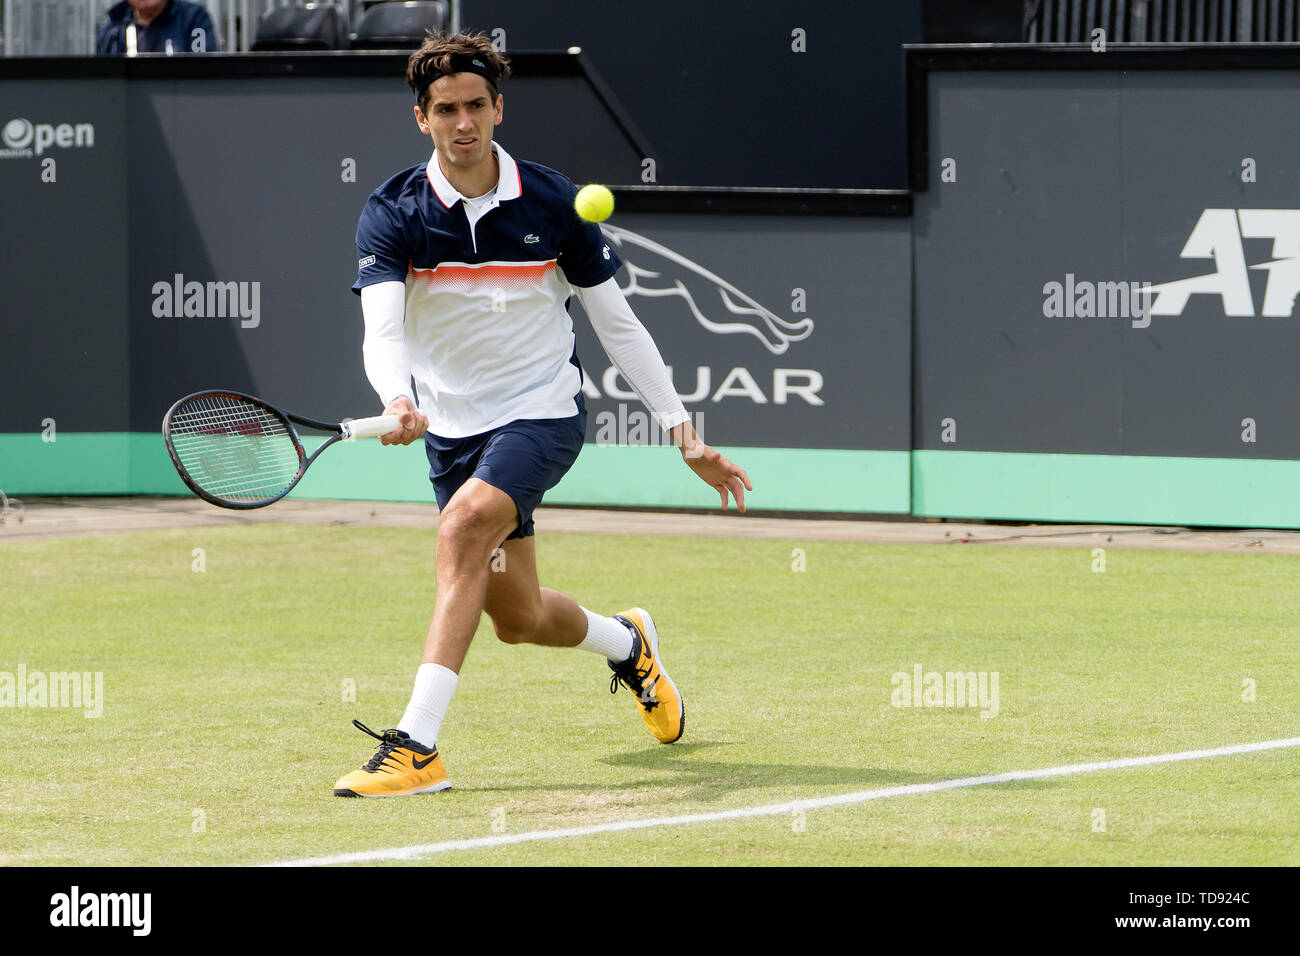 13 june 2019 Rosmalen, The Netherlands Tennis Libema open   Pierre-Hugues Herbert (FRA) - Stock Image